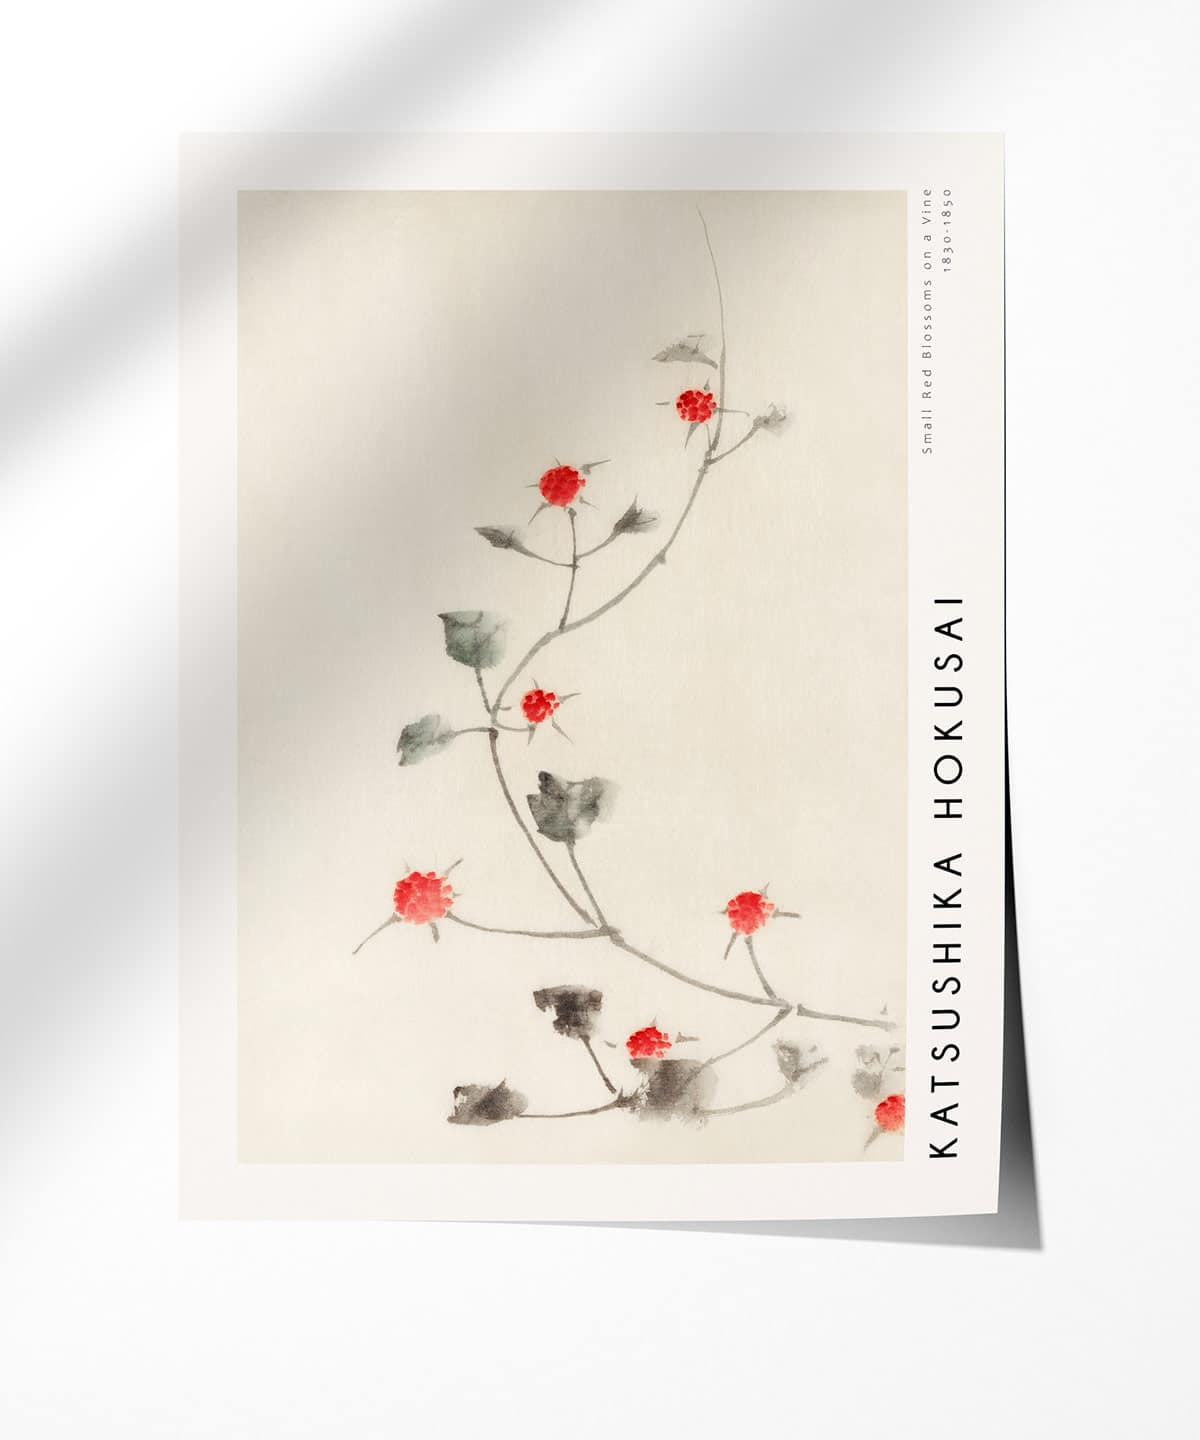 Hokusai-Small-Red-Blossoms-on-a-Vine-Poster-Photopaper-Duwart